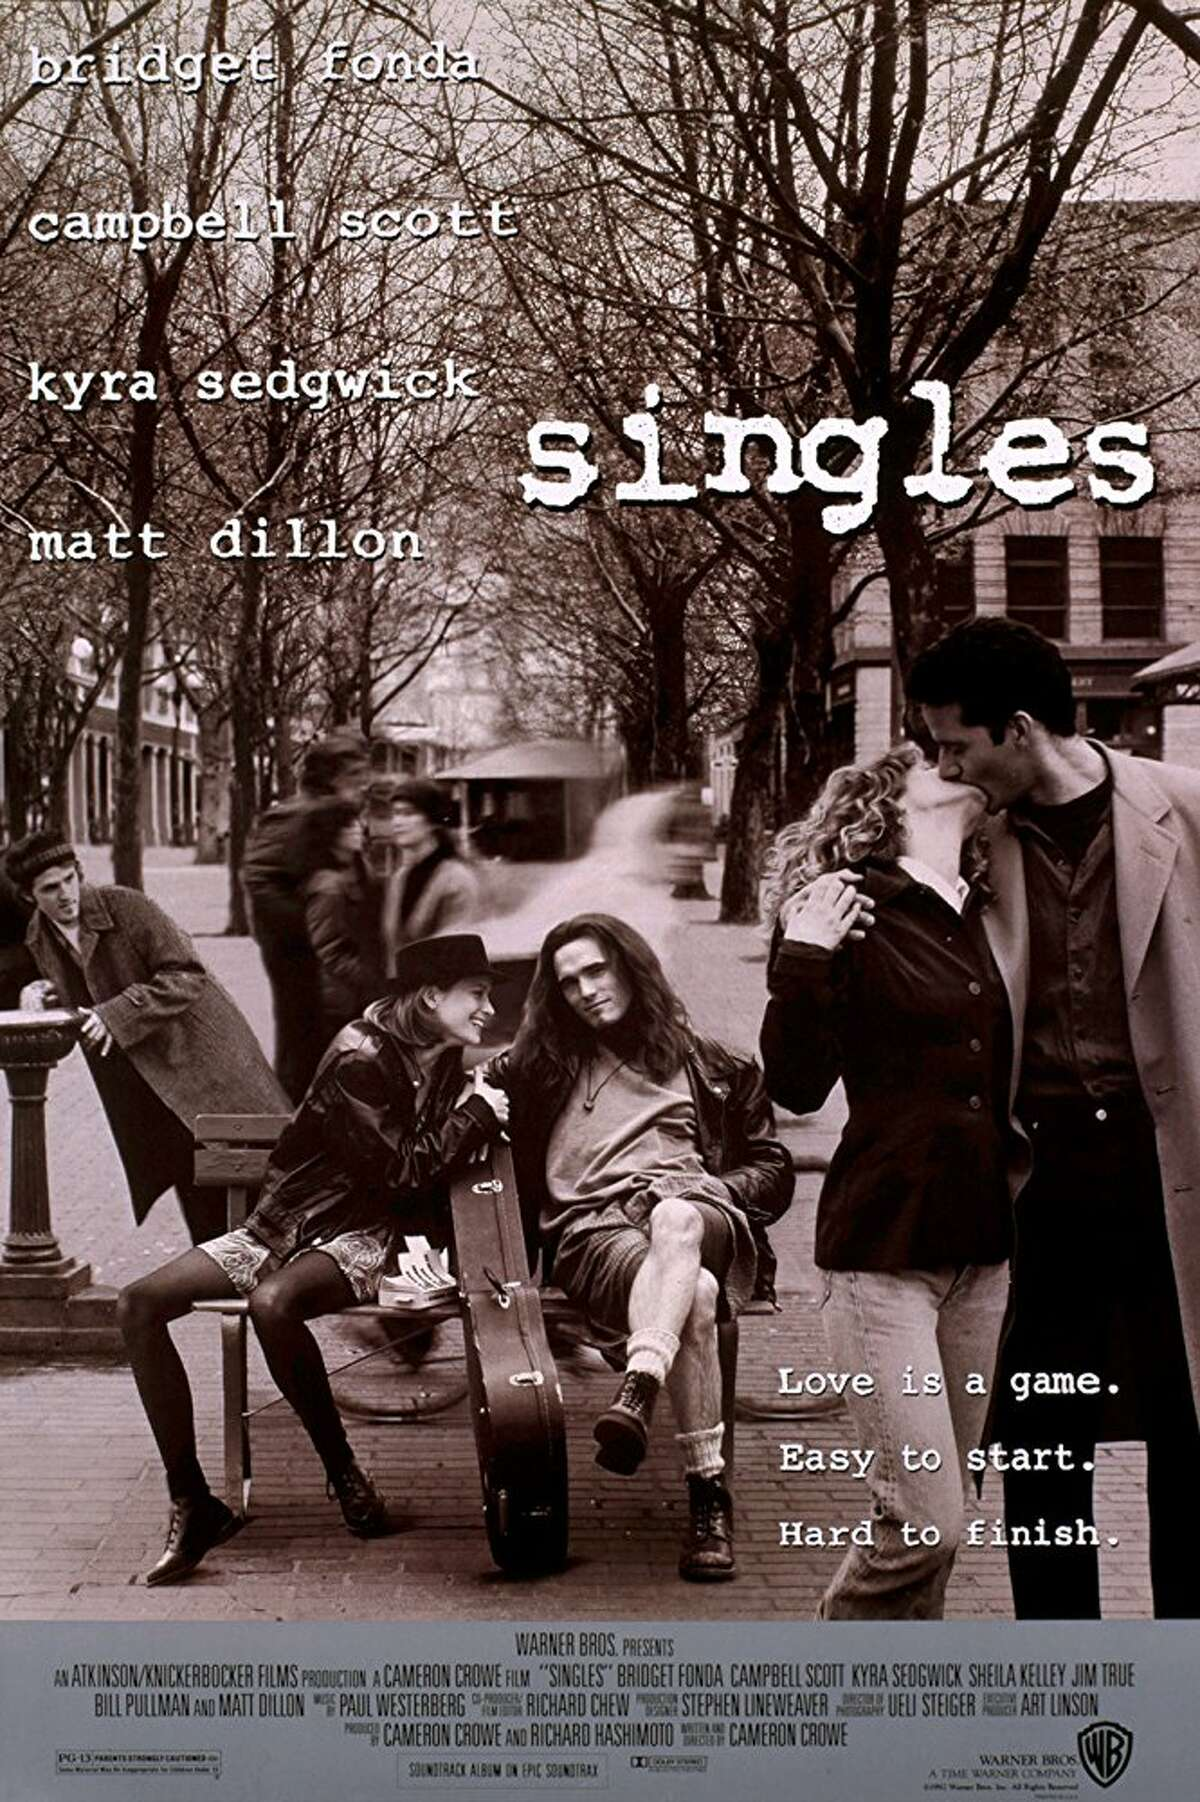 """Seattle's grunge-era movie -- Cameron Crowe's """"Singles"""" -- turns 25 Sept. 18. It's roundly beloved-to-lukewarmly received, but some do not care for it. Read on to find savage takes from the internet and some of the original 1992 movie critics' reviews."""